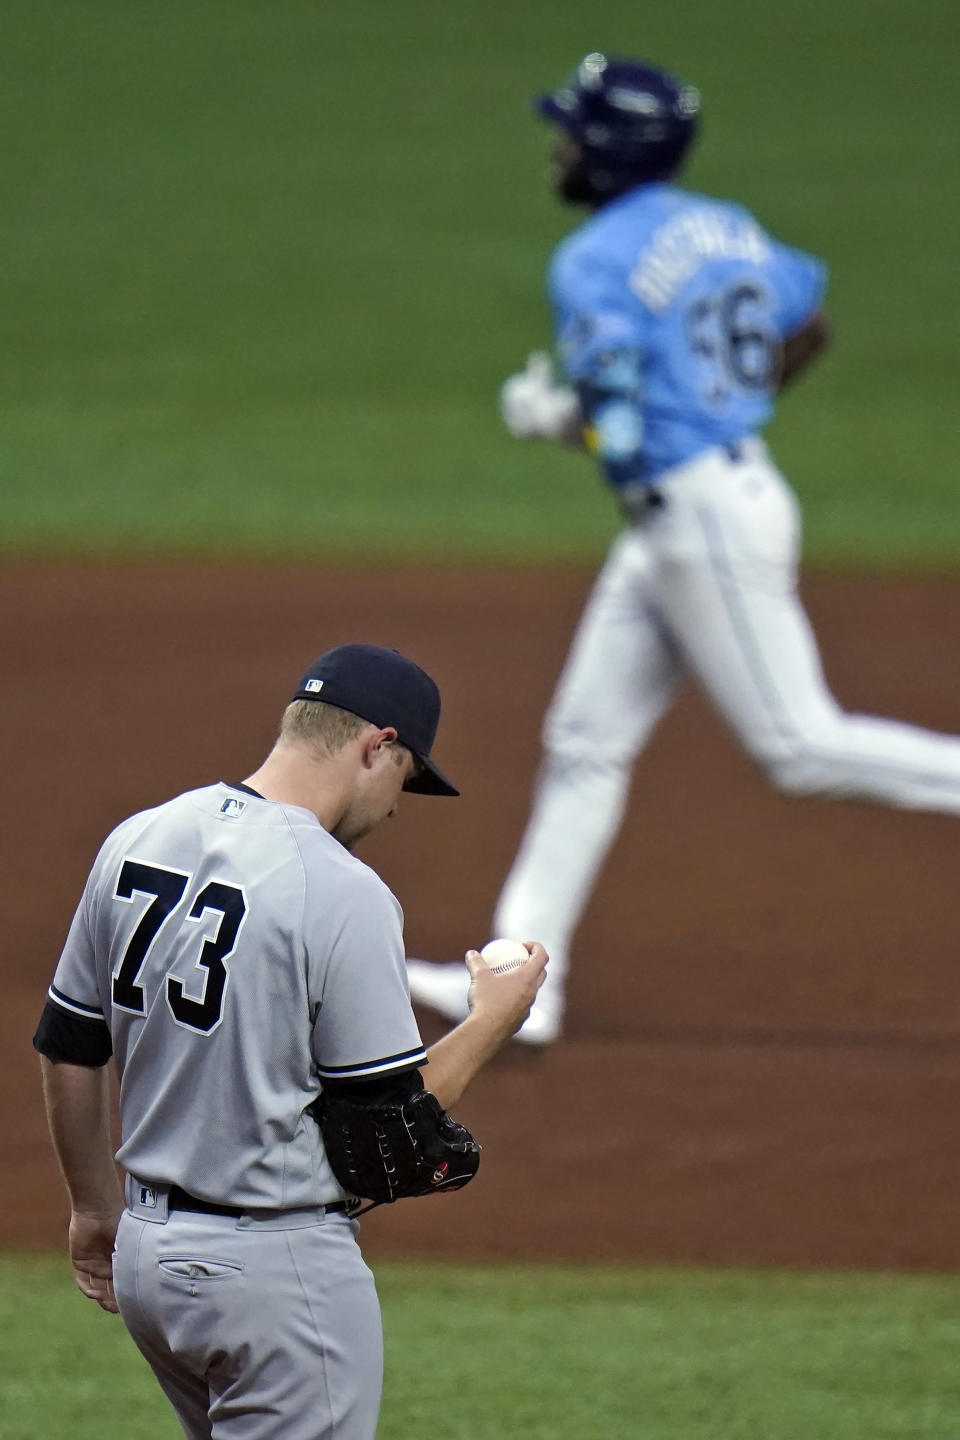 New York Yankees pitcher Michael King reacts as Tampa Bay Rays' Randy Arozarena runs around the bases after hitting a three-run home run during the sixth inning of a baseball game Thursday, May 13, 2021, in St. Petersburg, Fla. (AP Photo/Chris O'Meara)